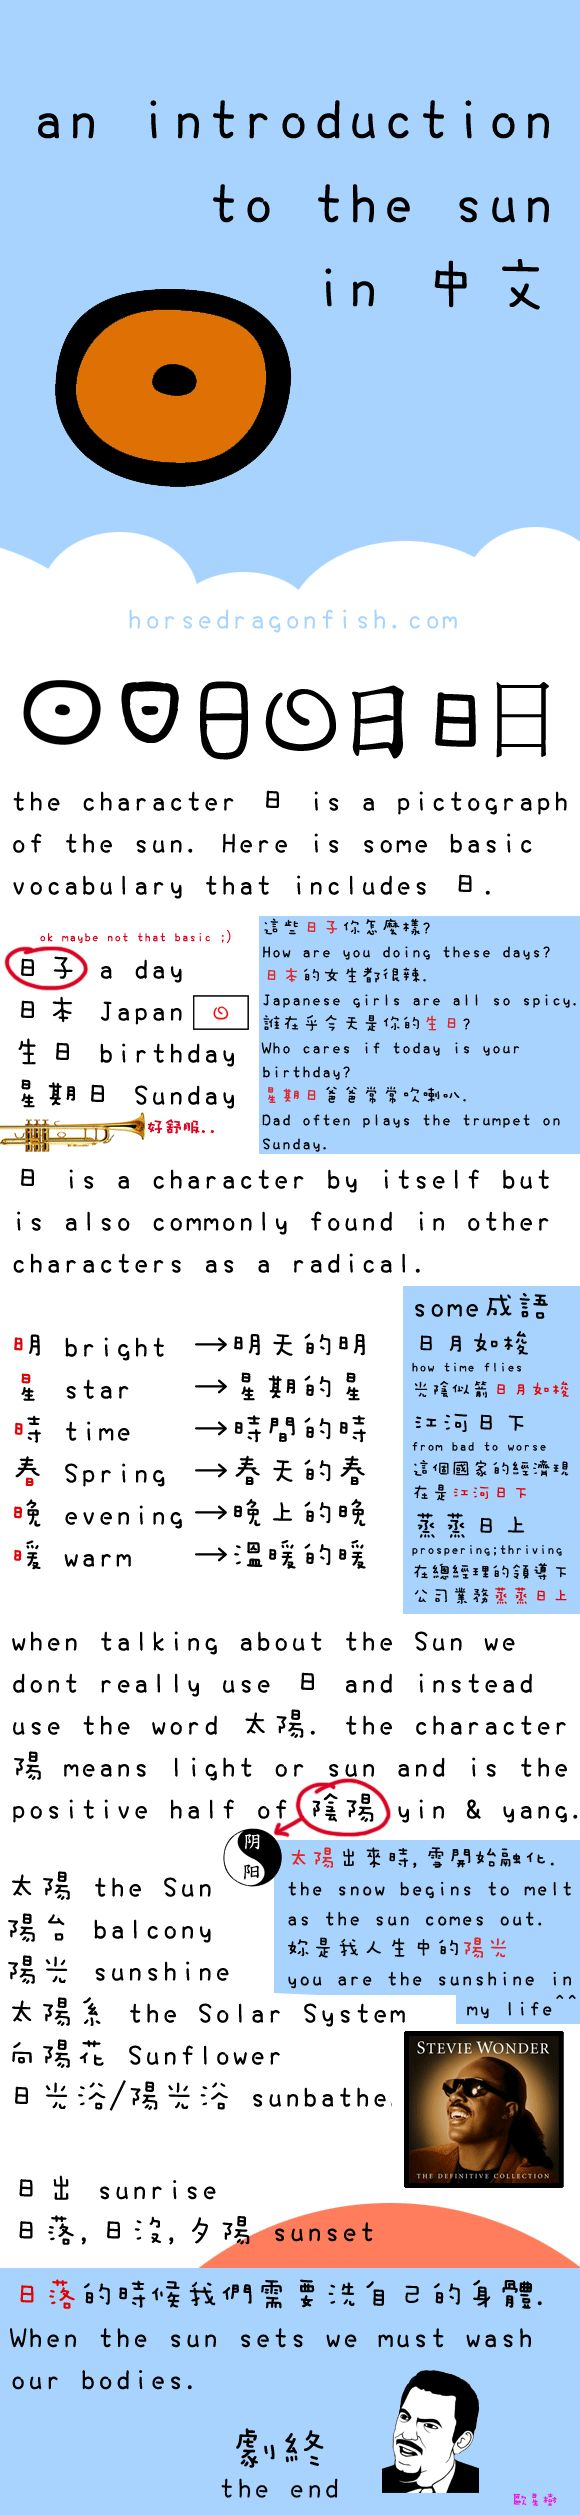 An introduce to the usage of the word Sun in Chinese Language